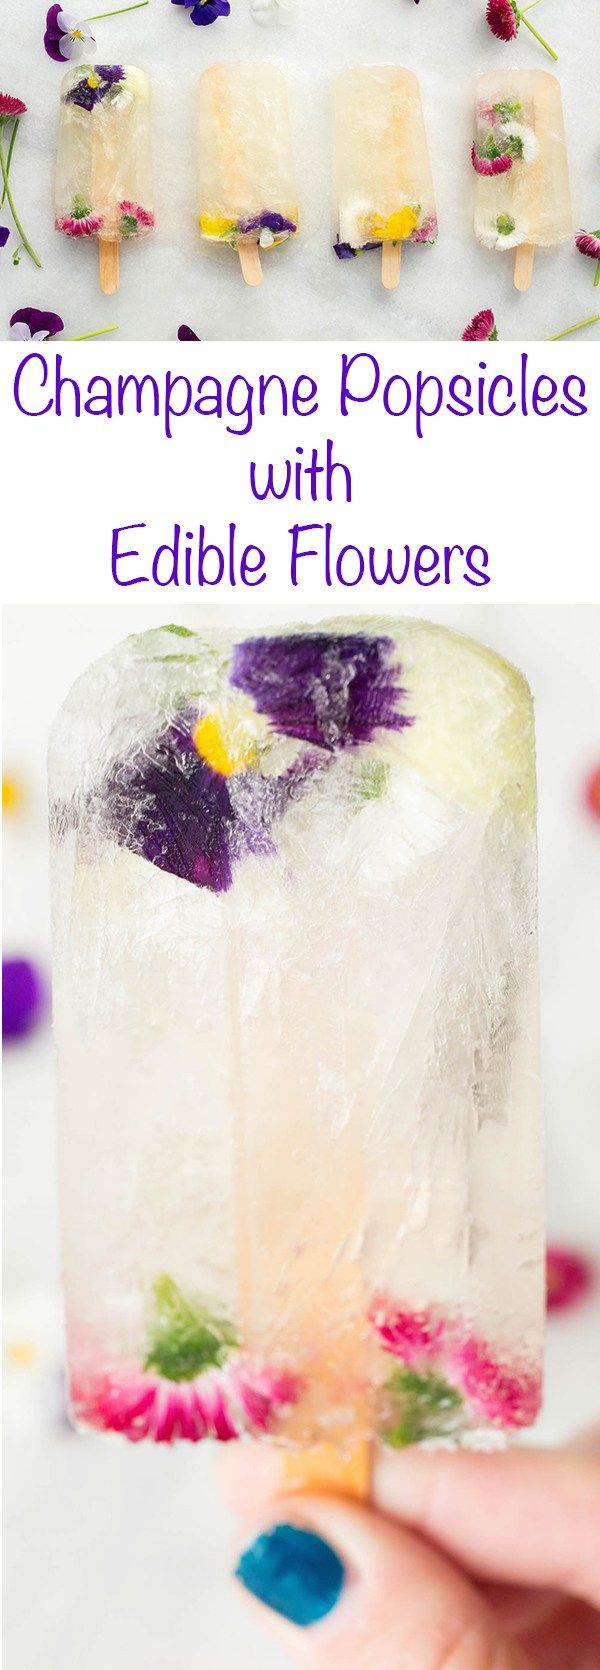 Champagne Popsicles with St. Germain & Edible Flowers